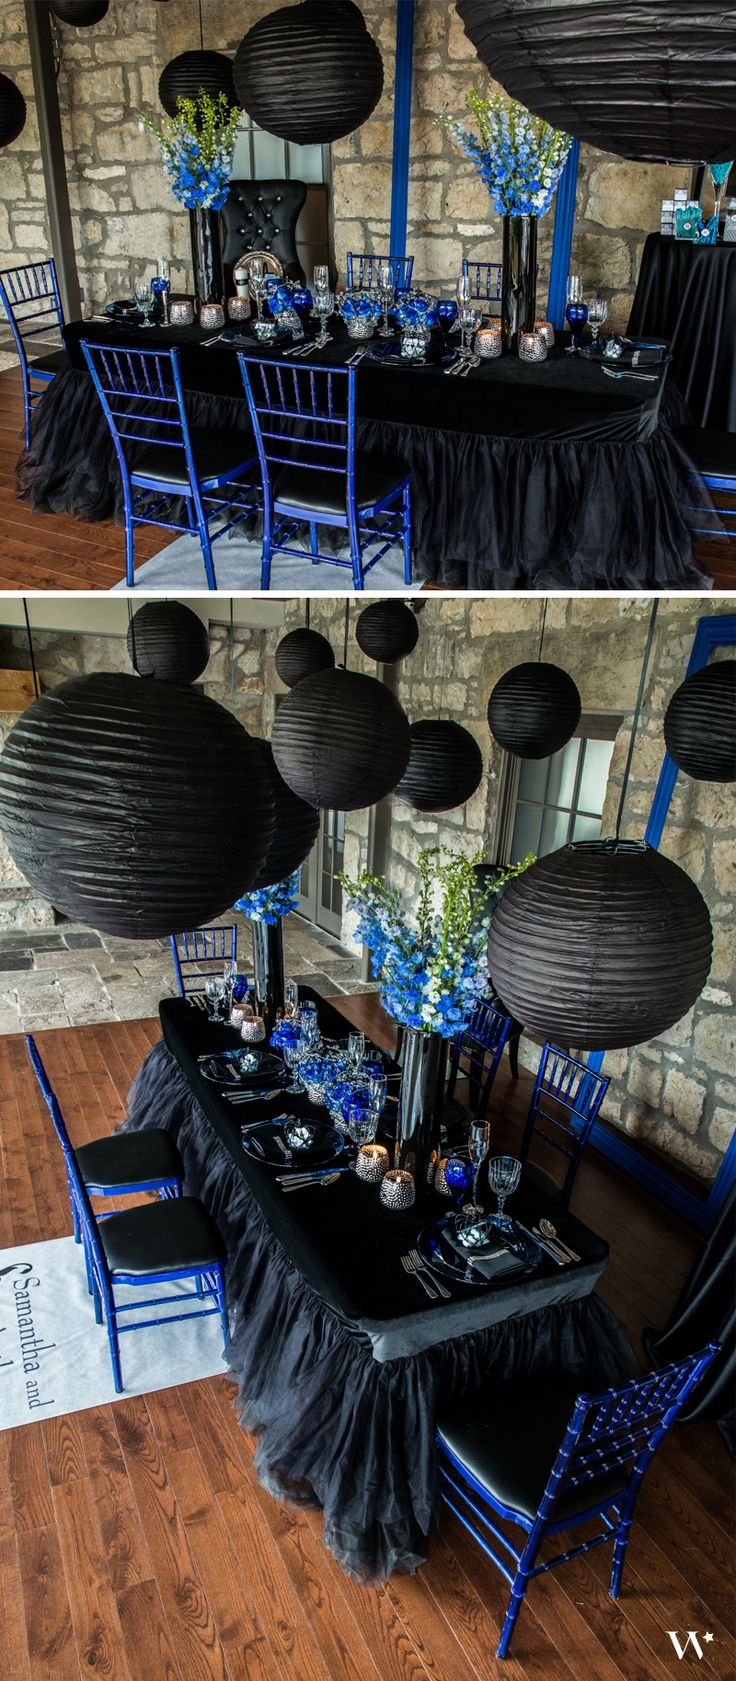 Black, silver and hues of blue combine to make our Royal Blue themed wedding truly regal. See the rest of the shoot here: http://www.weddingstar.com/beverly-clark-collections/beverly-clark-the-crowned-jewel